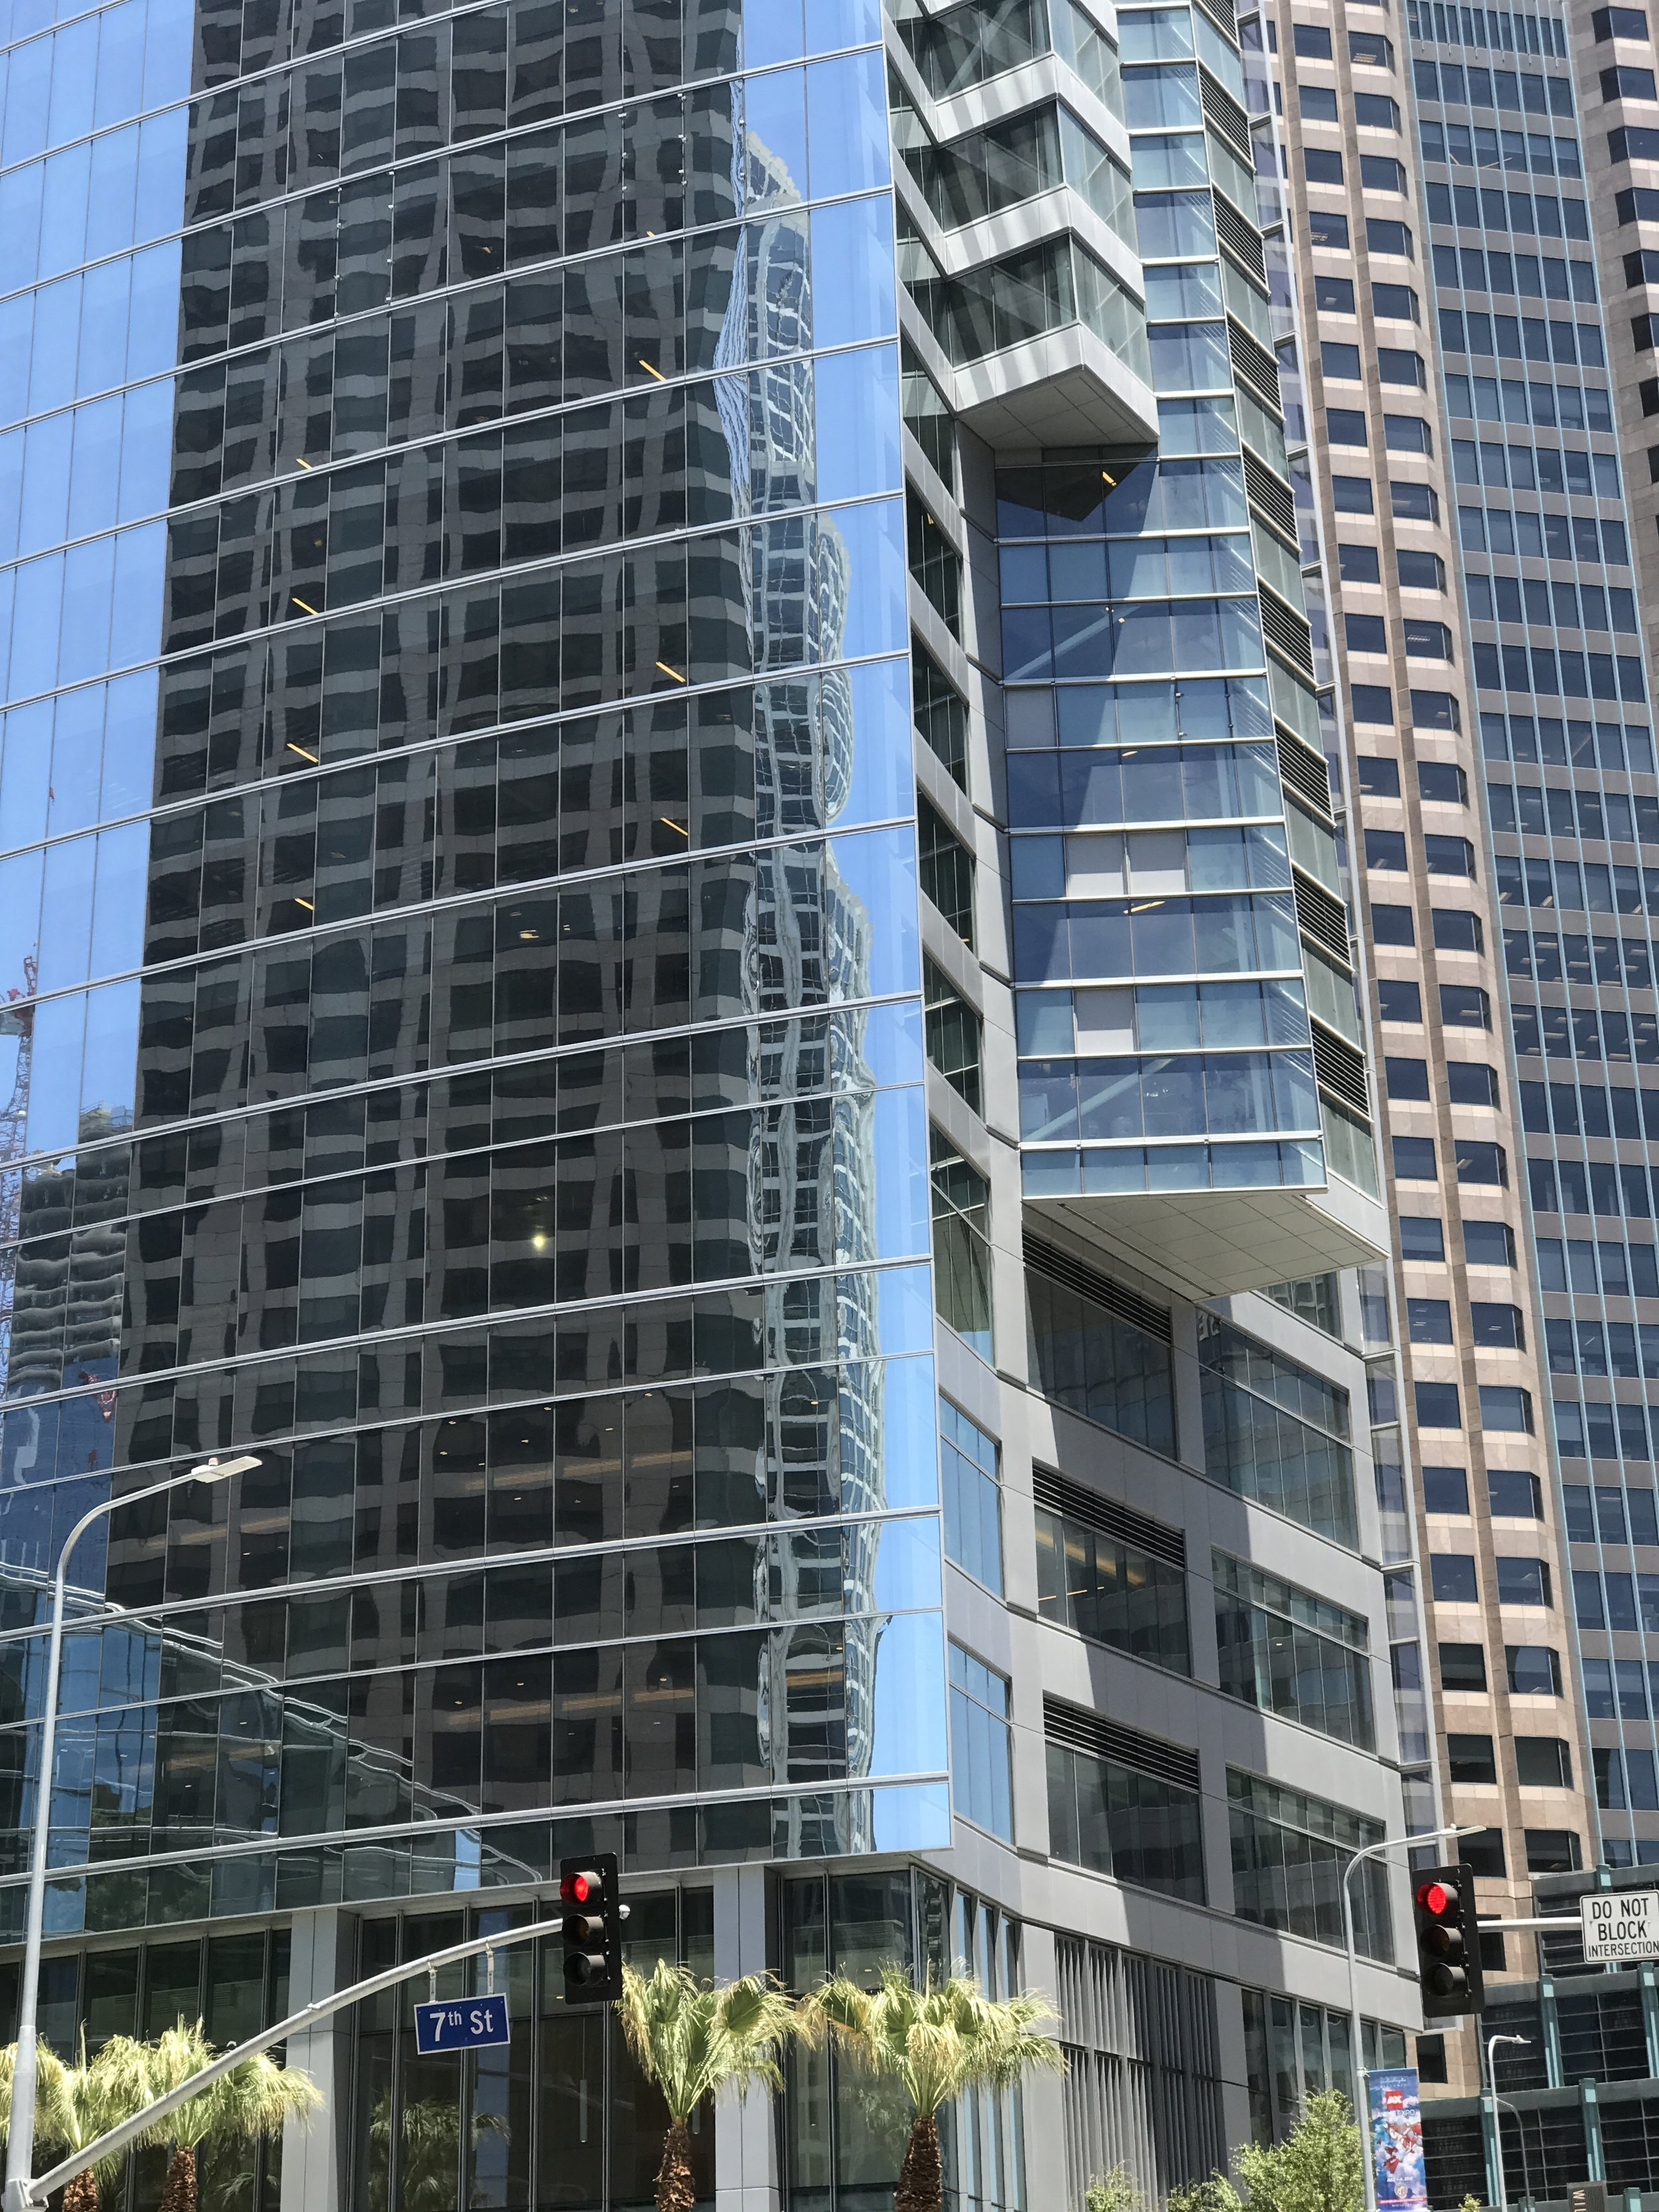 Incongruous facade articulations at Wilshire Grand Center.